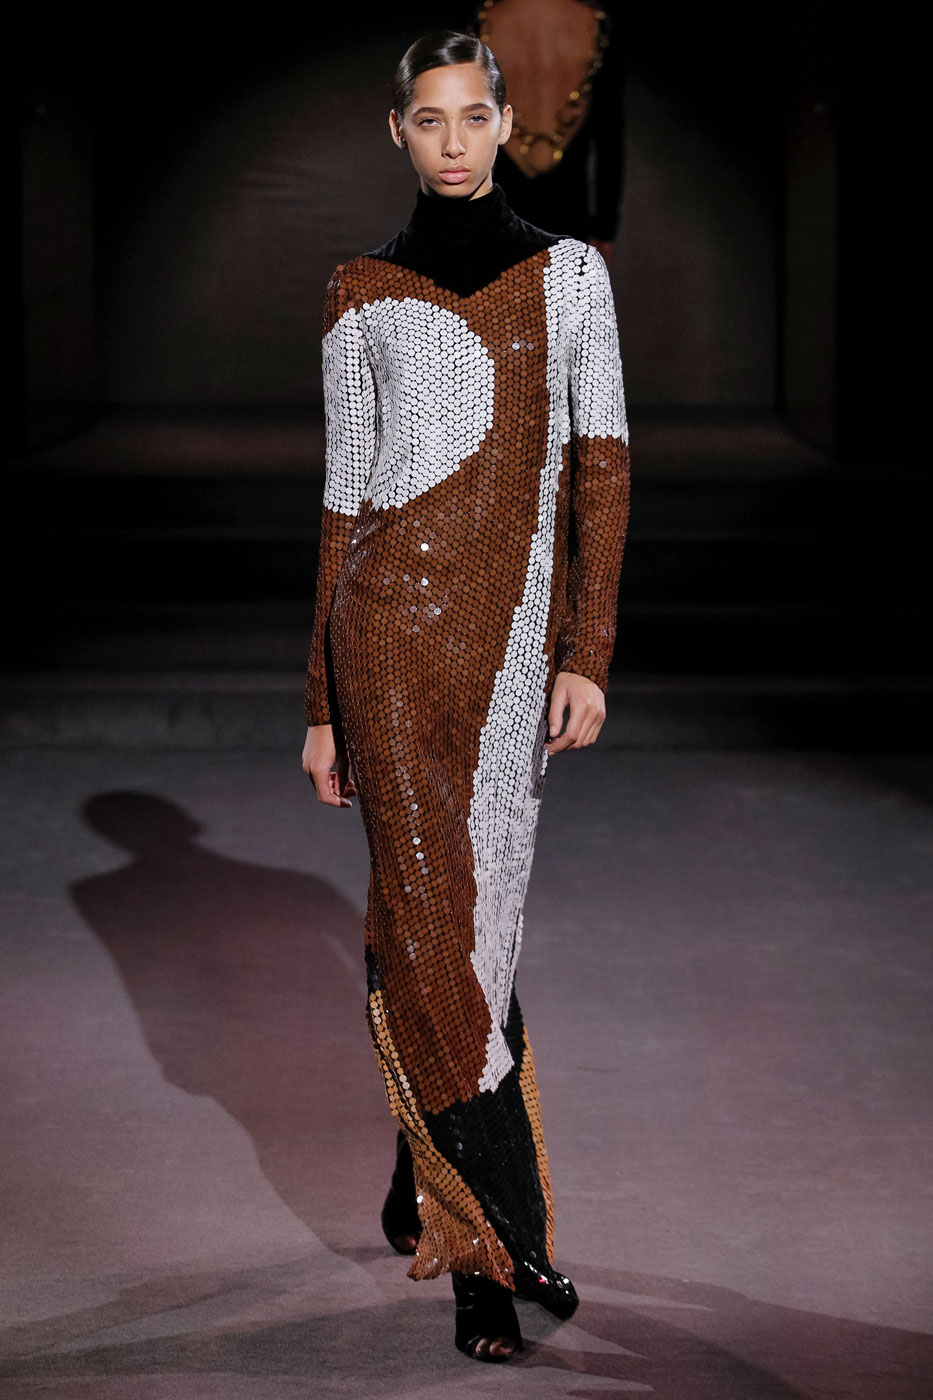 Tom Ford Makes a Decadent Fall Proposition During SS17 Fashion Week